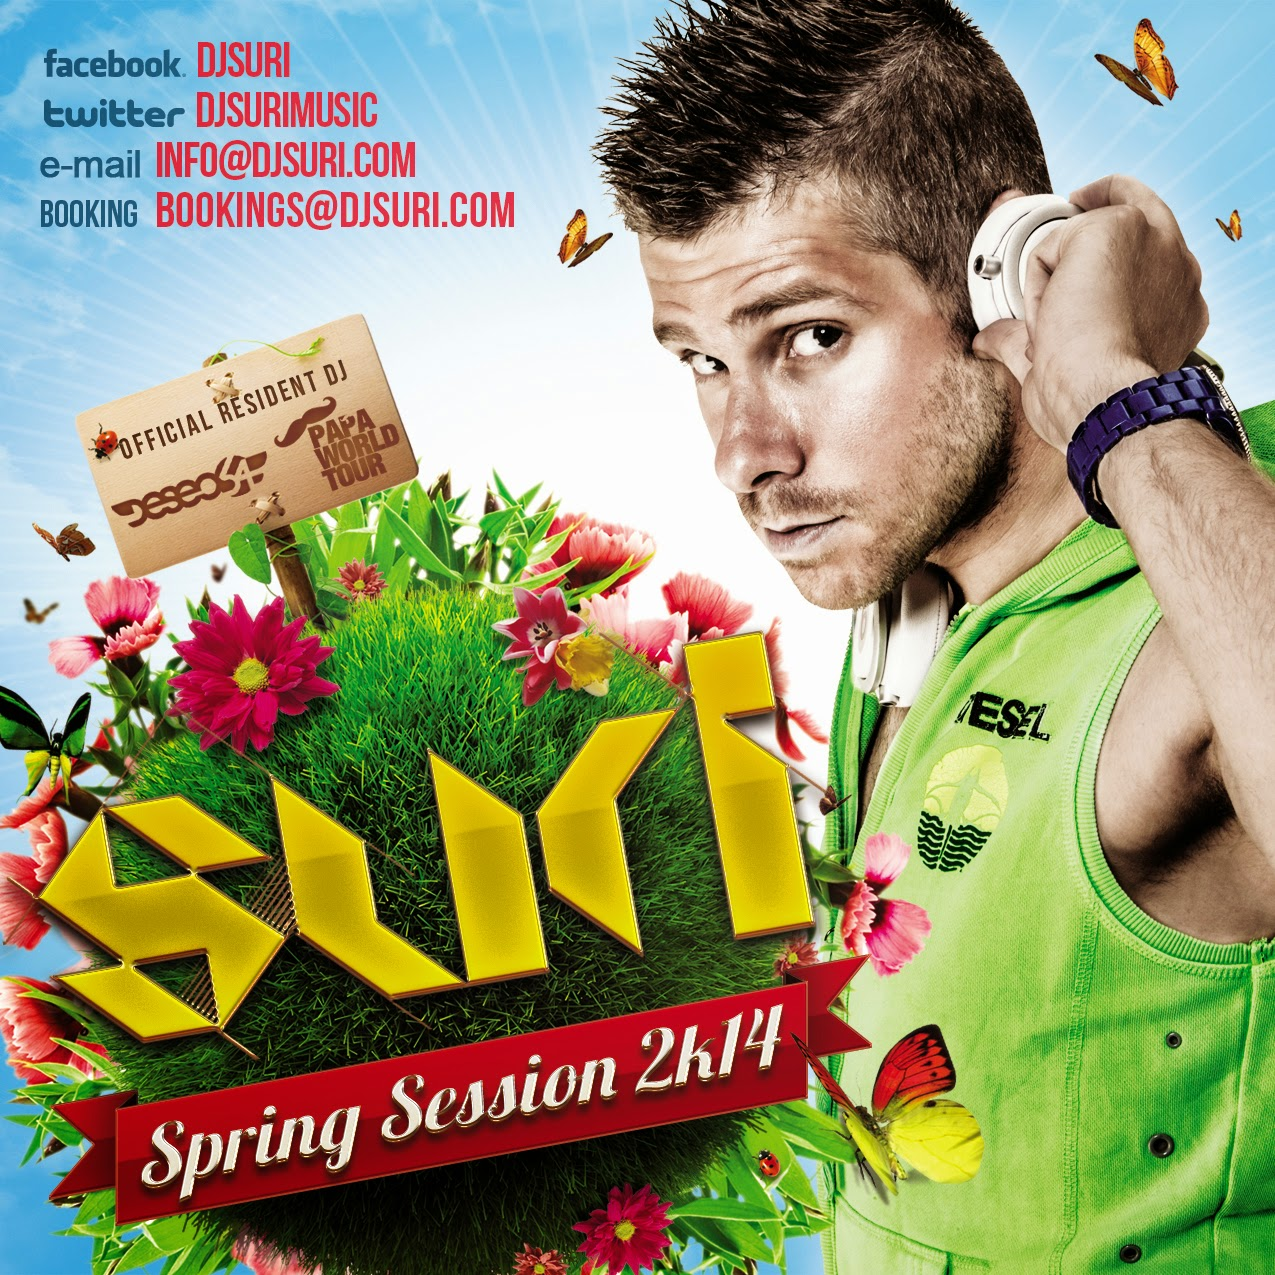 DJ Suri - SPRING SESSION 2k14